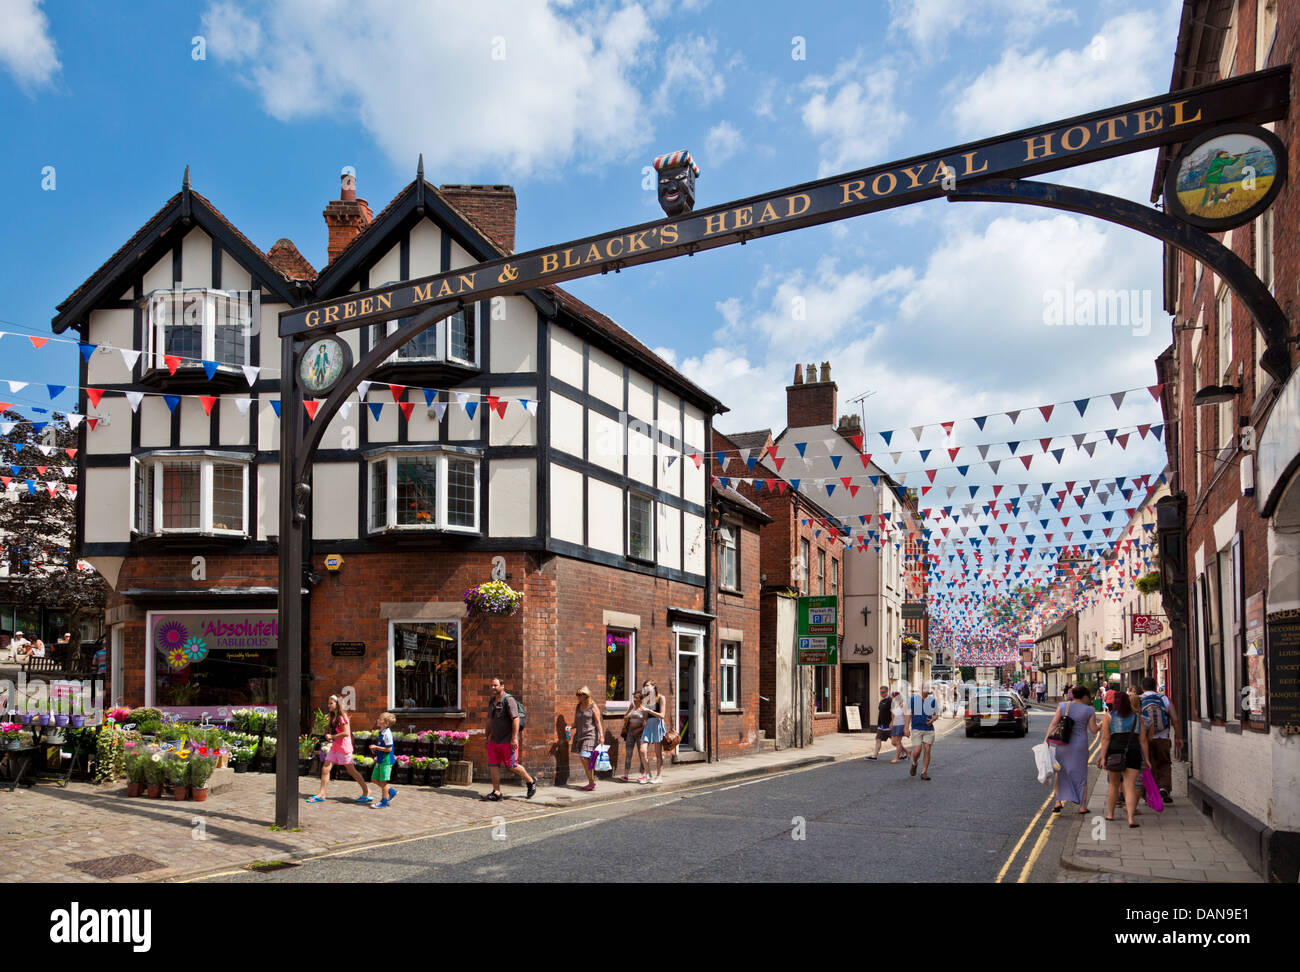 Town centre main street decked with bunting Ashbourne Derbyshire England UK GB EU Europe - Stock Image